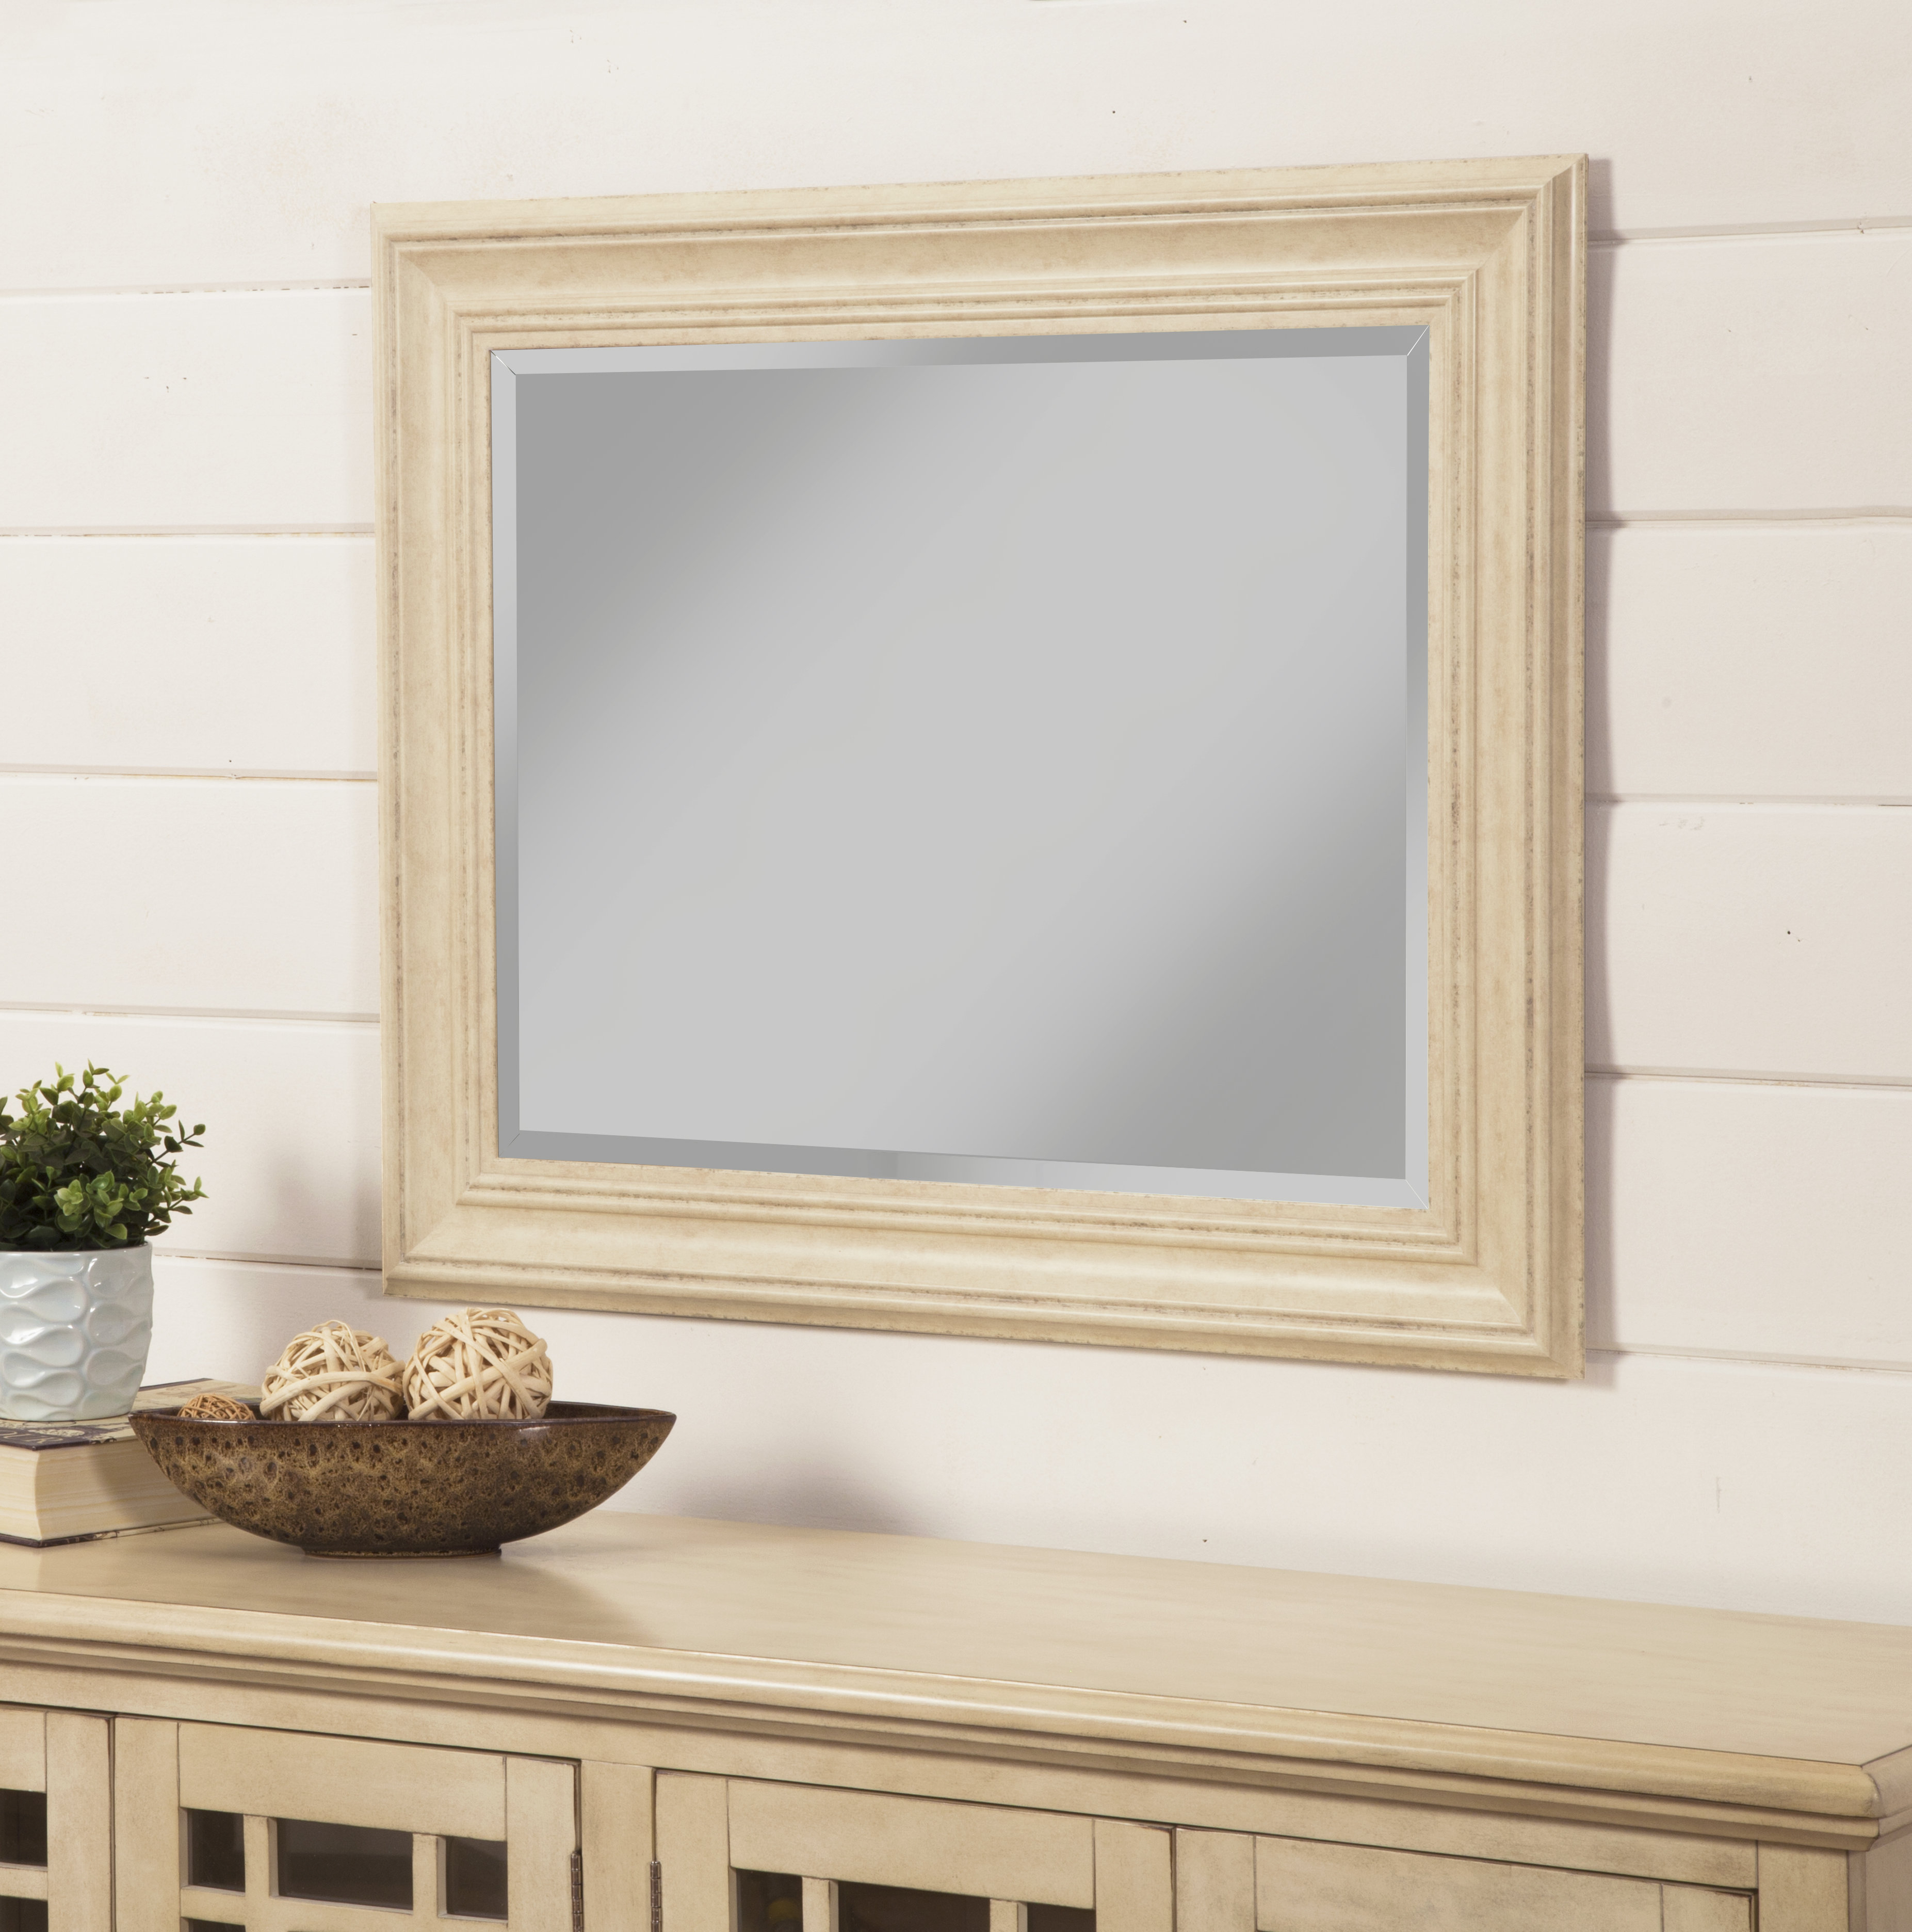 Attie Traditional Beveled Wall Mirror Throughout Traditional Beveled Wall Mirrors (View 5 of 20)